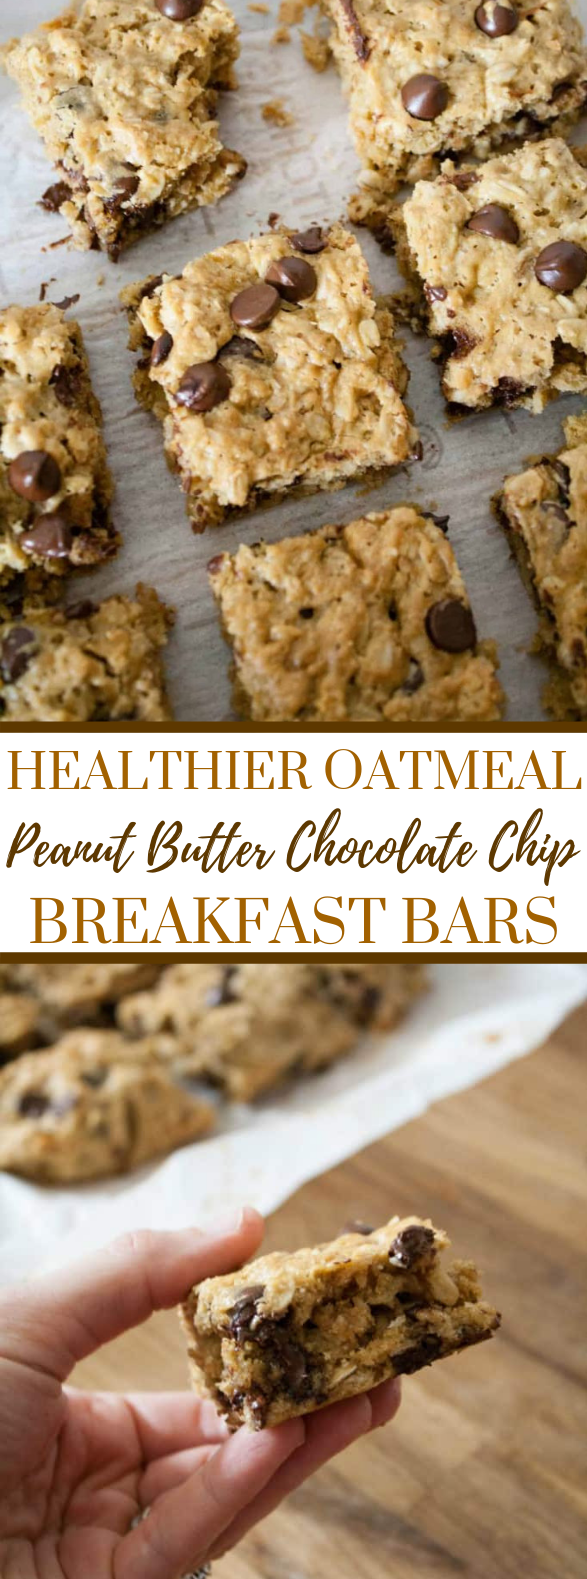 HEALTHIER OATMEAL PEANUT BUTTER CHOCOLATE CHIP BREAKFAST BARS #healthy #deliciousrecipe